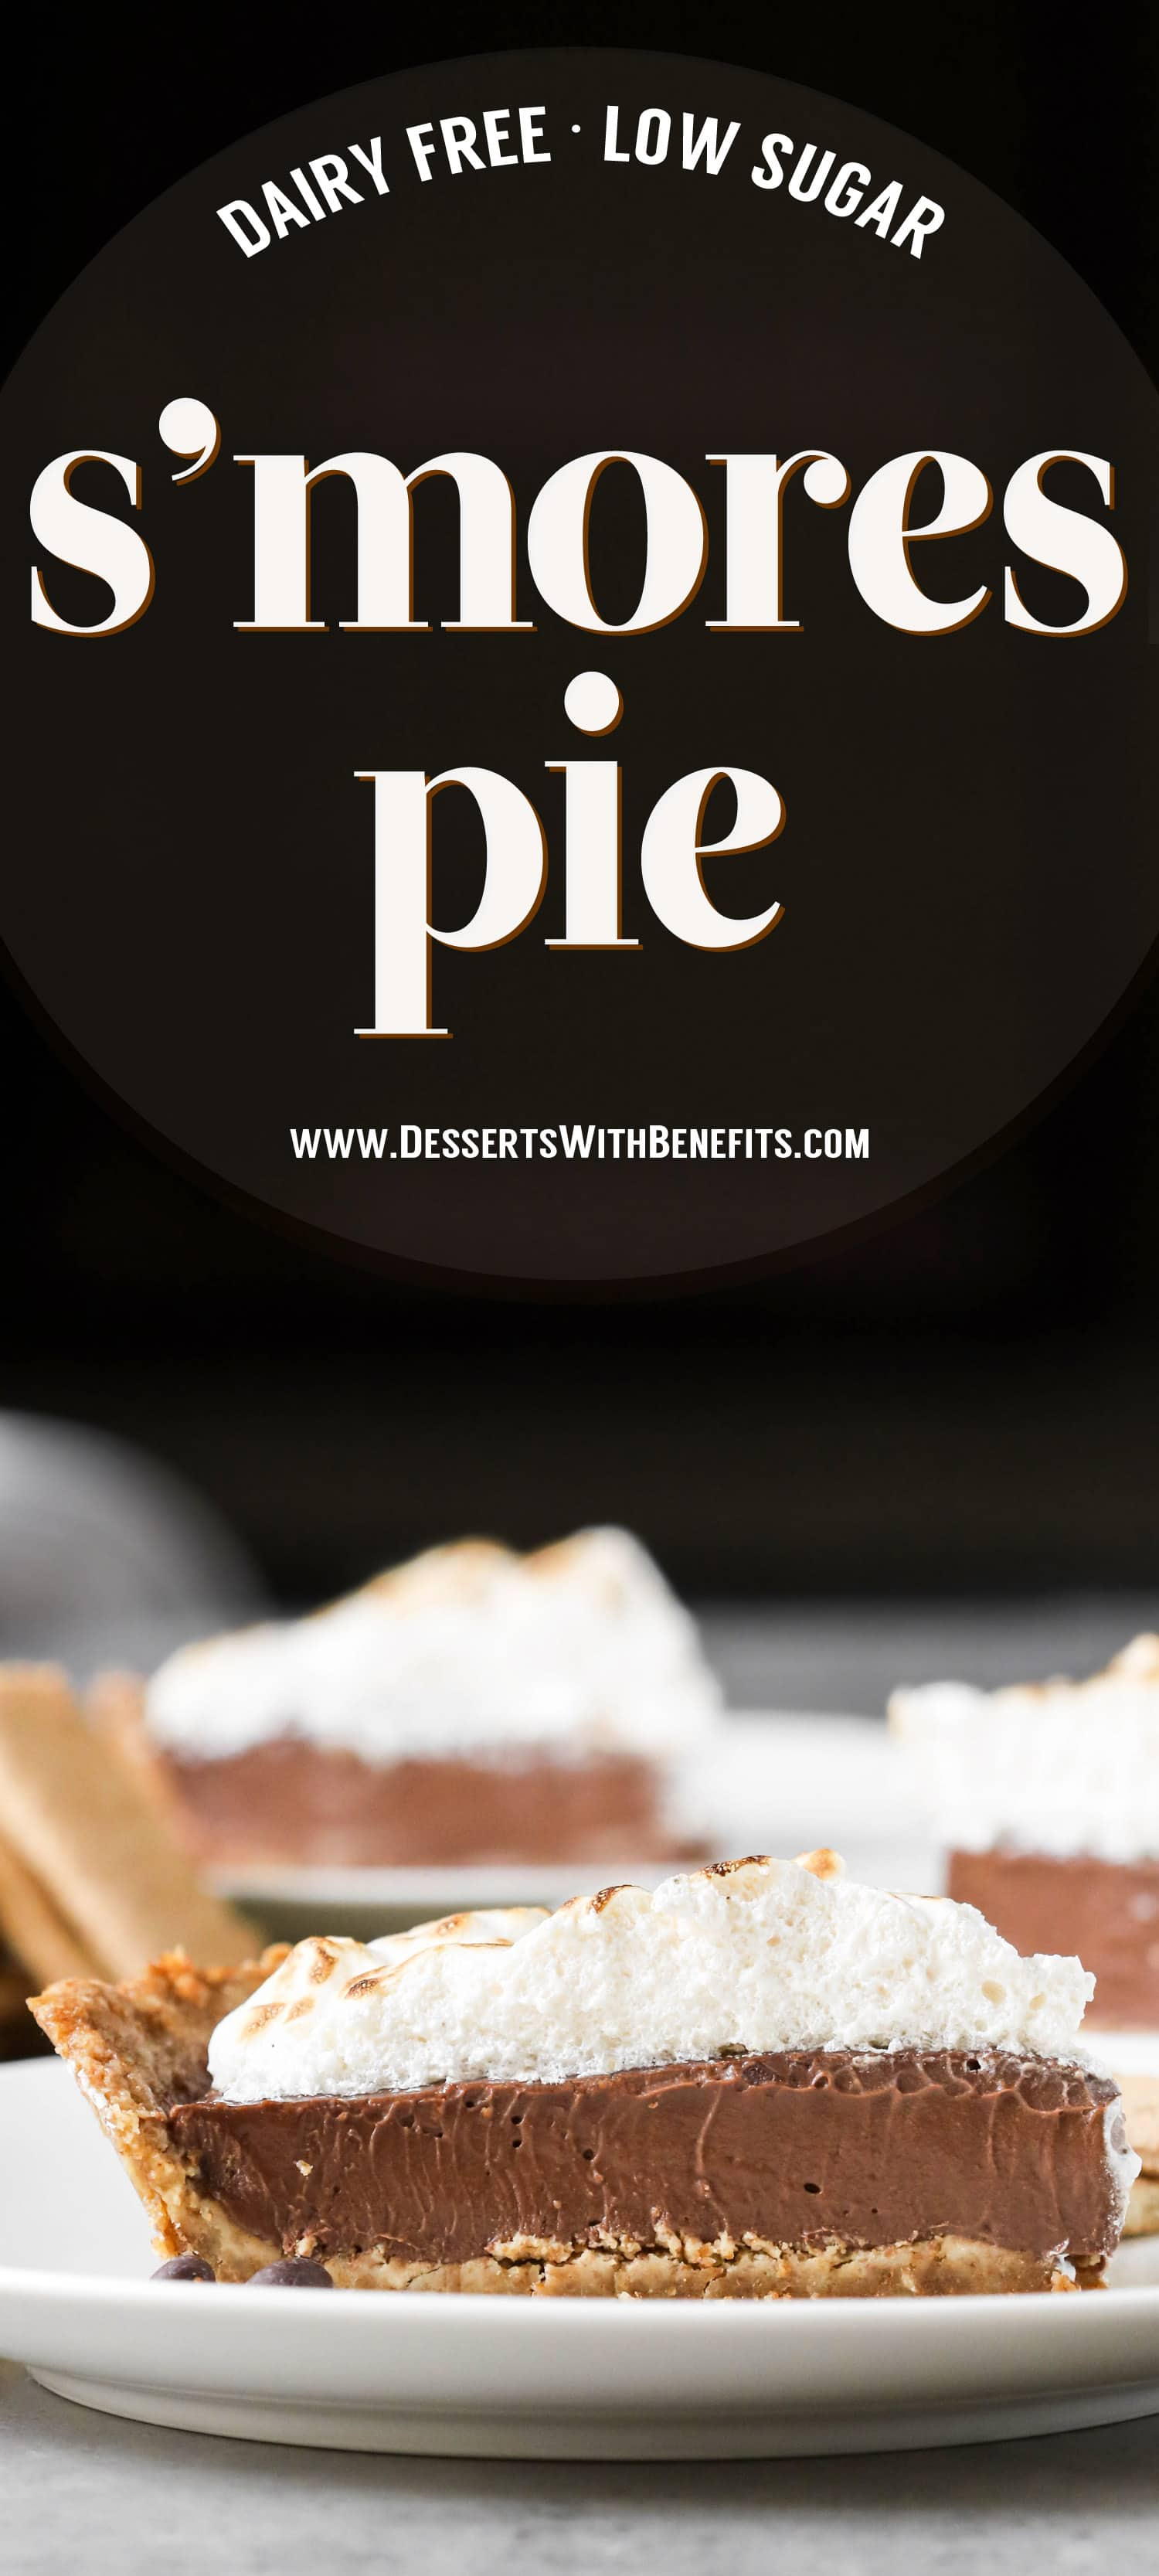 This S'mores Pie has a deliciously comforting graham cracker crust, a rich and creamy chocolate filling, and a homemade marshmallow fluff topping. And it's dairy free and low in sugar! Healthy Dessert Recipes at the Desserts With Benefits Blog